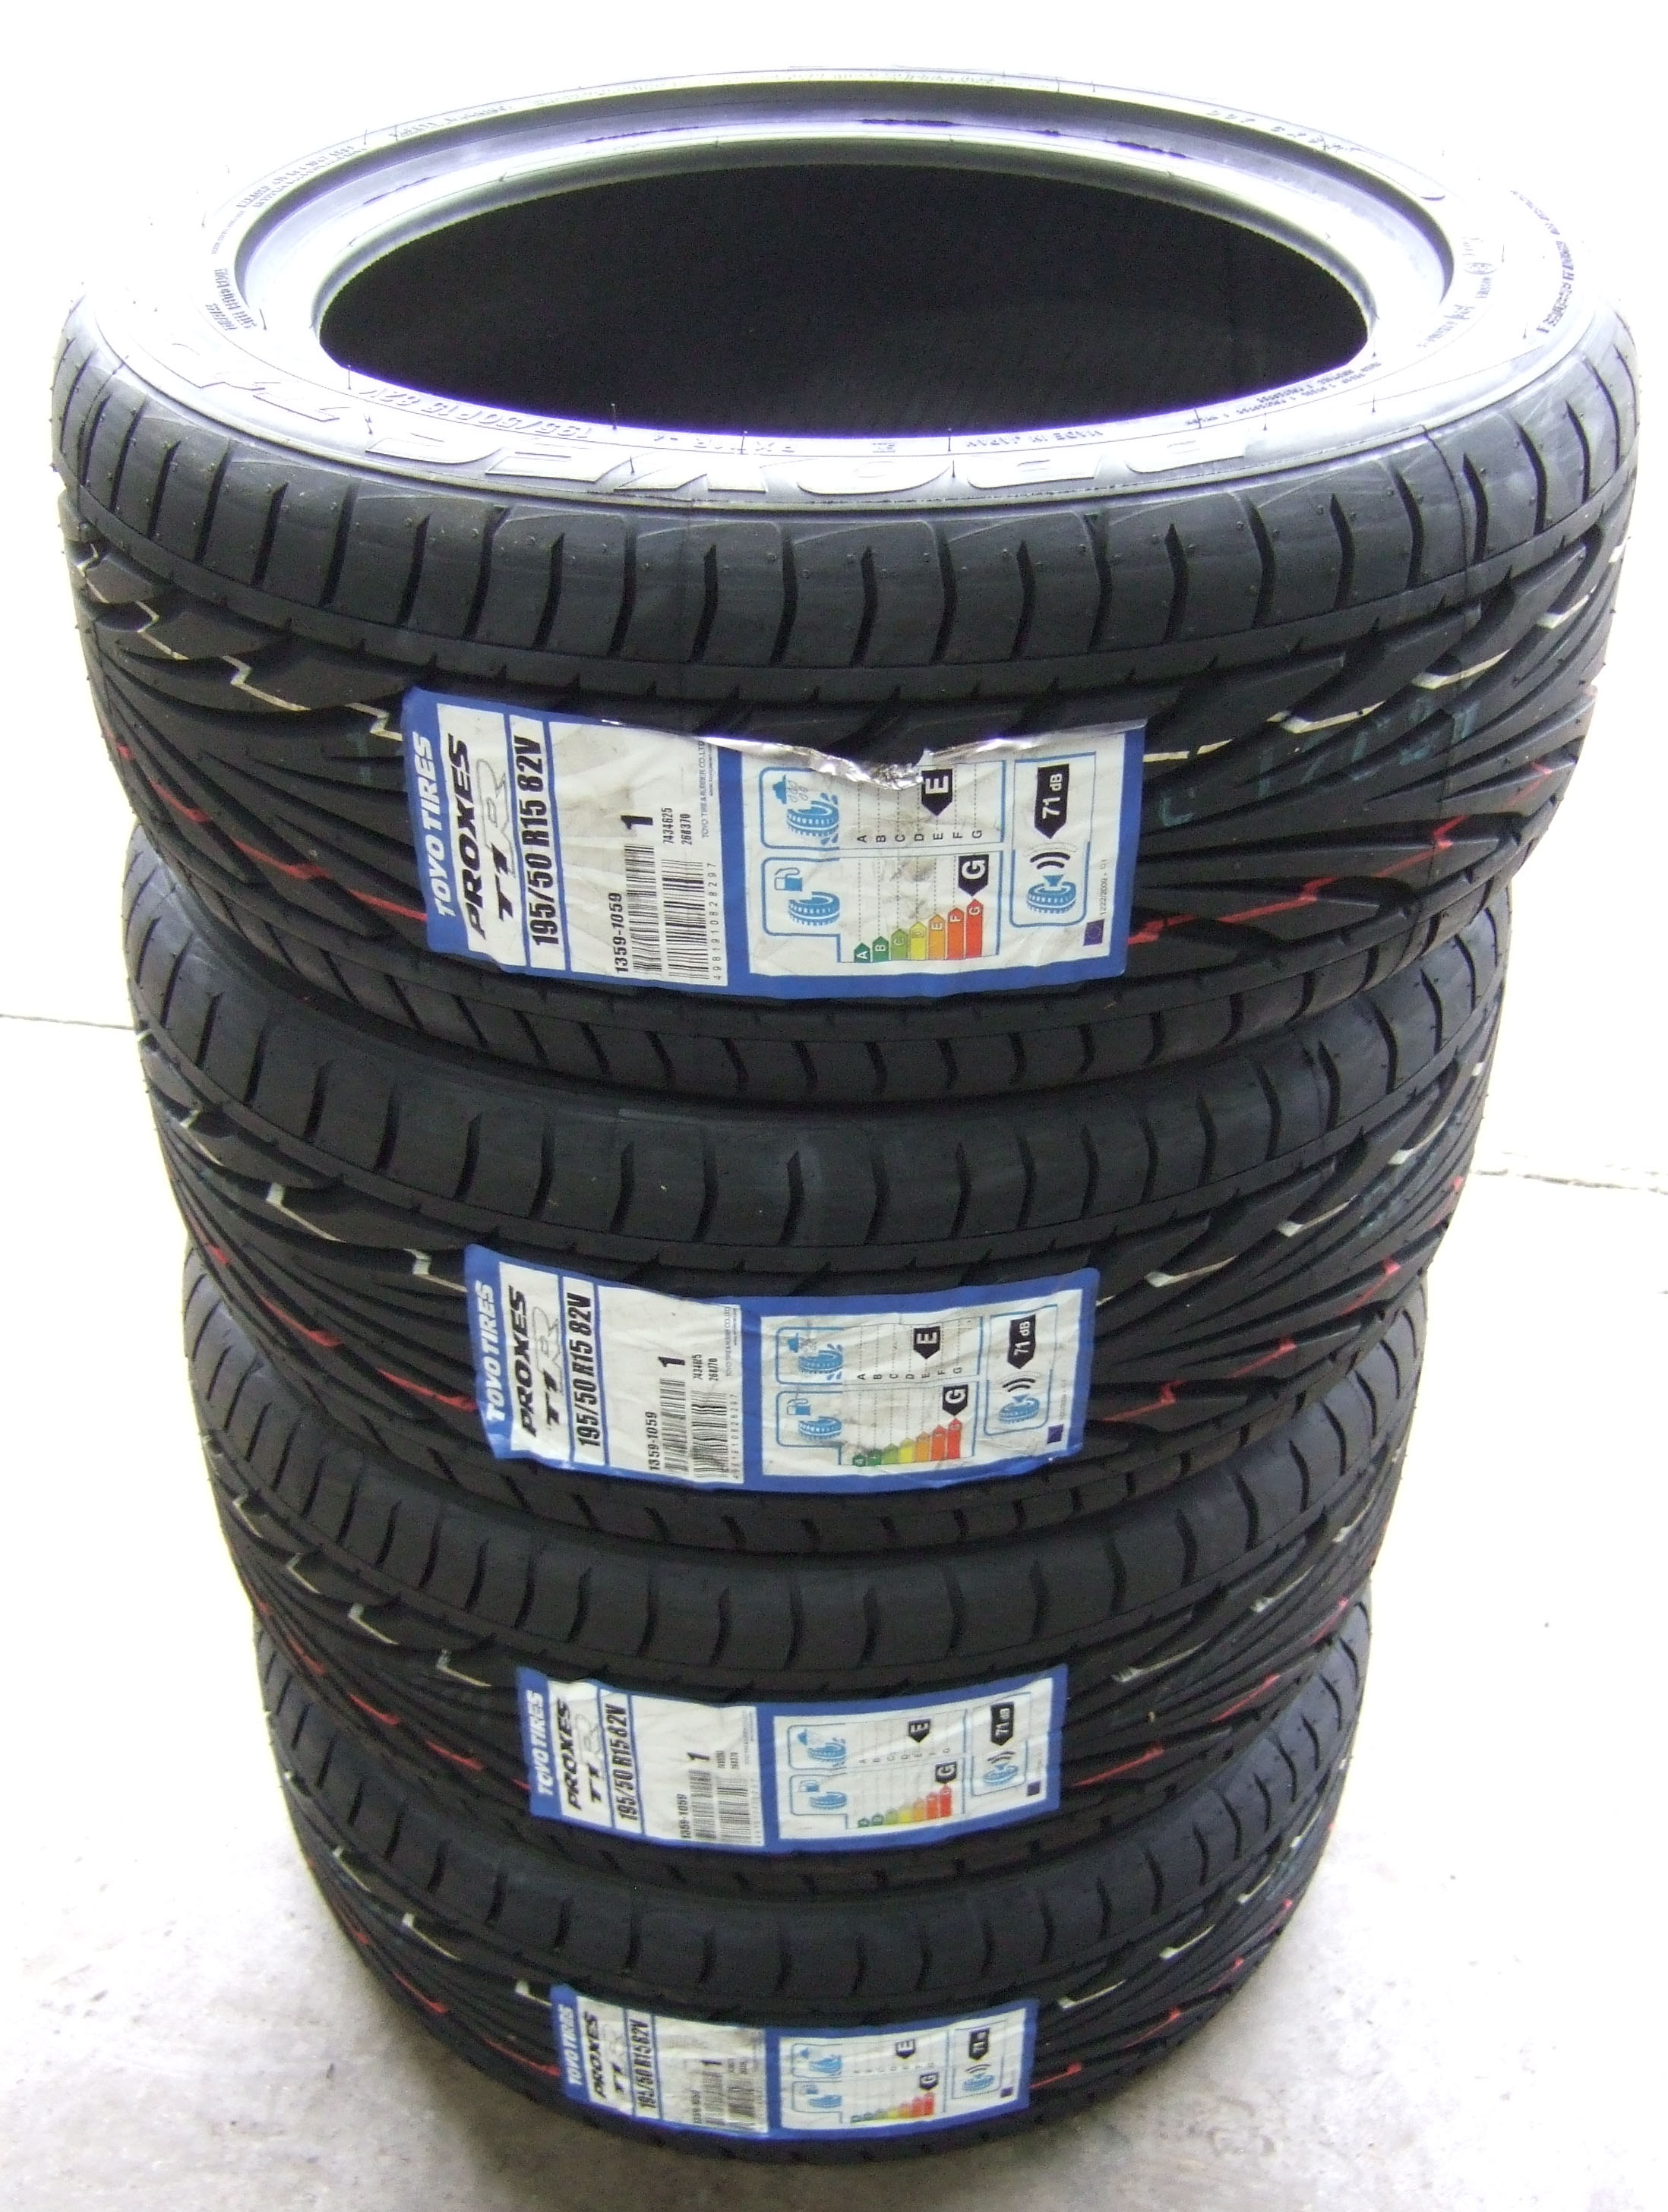 195 50 15 toyo t1r proxes tyres 1955015 tyres 195 50 15 x4 ebay. Black Bedroom Furniture Sets. Home Design Ideas